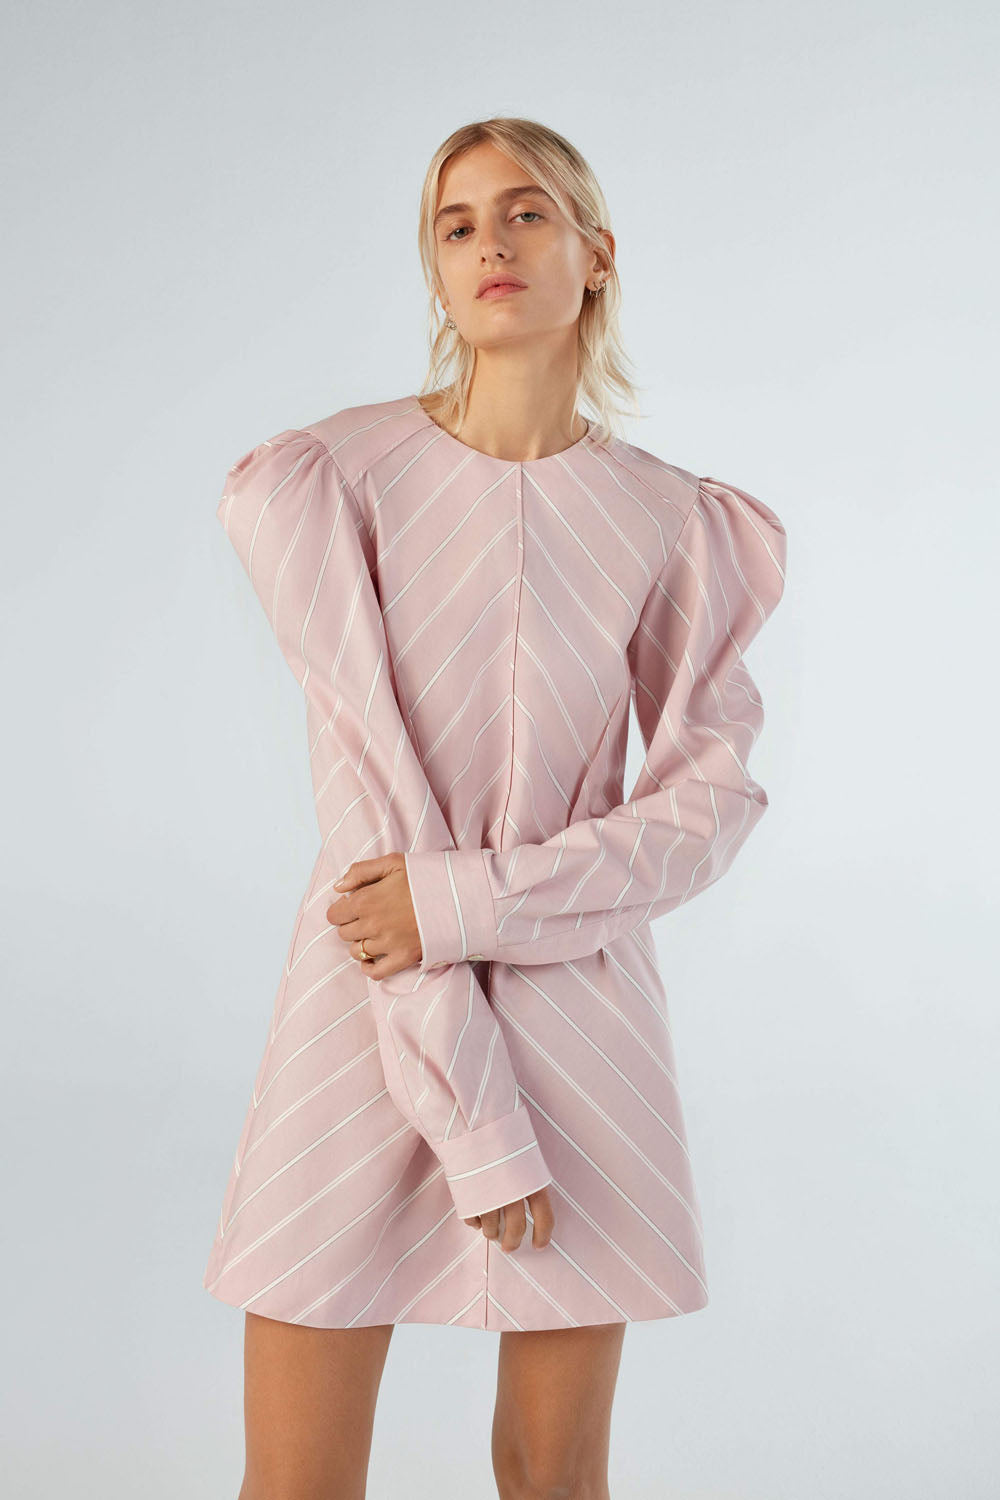 Women Fashion Lookbook Spring 2020 Collection Aknvas Look 2